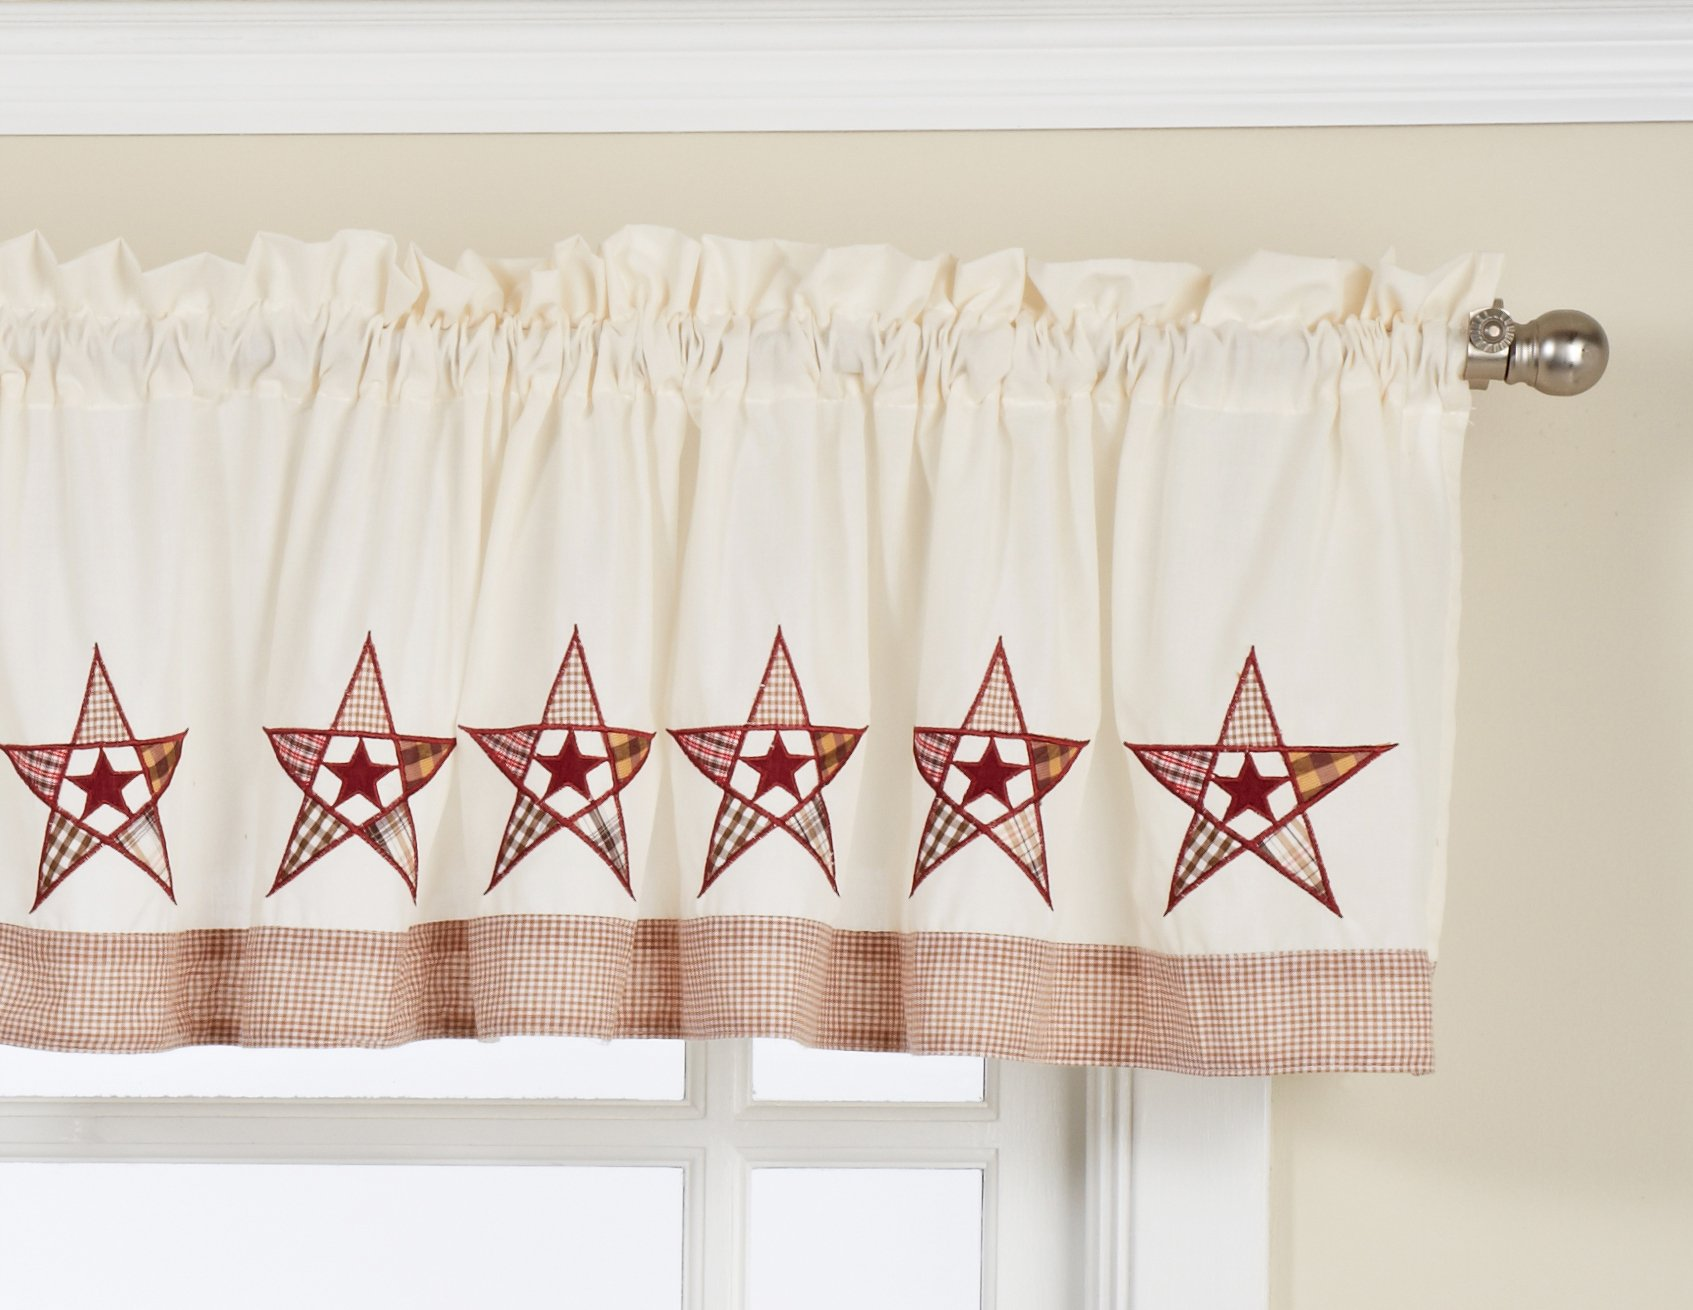 Lorraine Home Fashions Country Stars Tailored Valance, 60 by 12-Inch, Ecru/Red